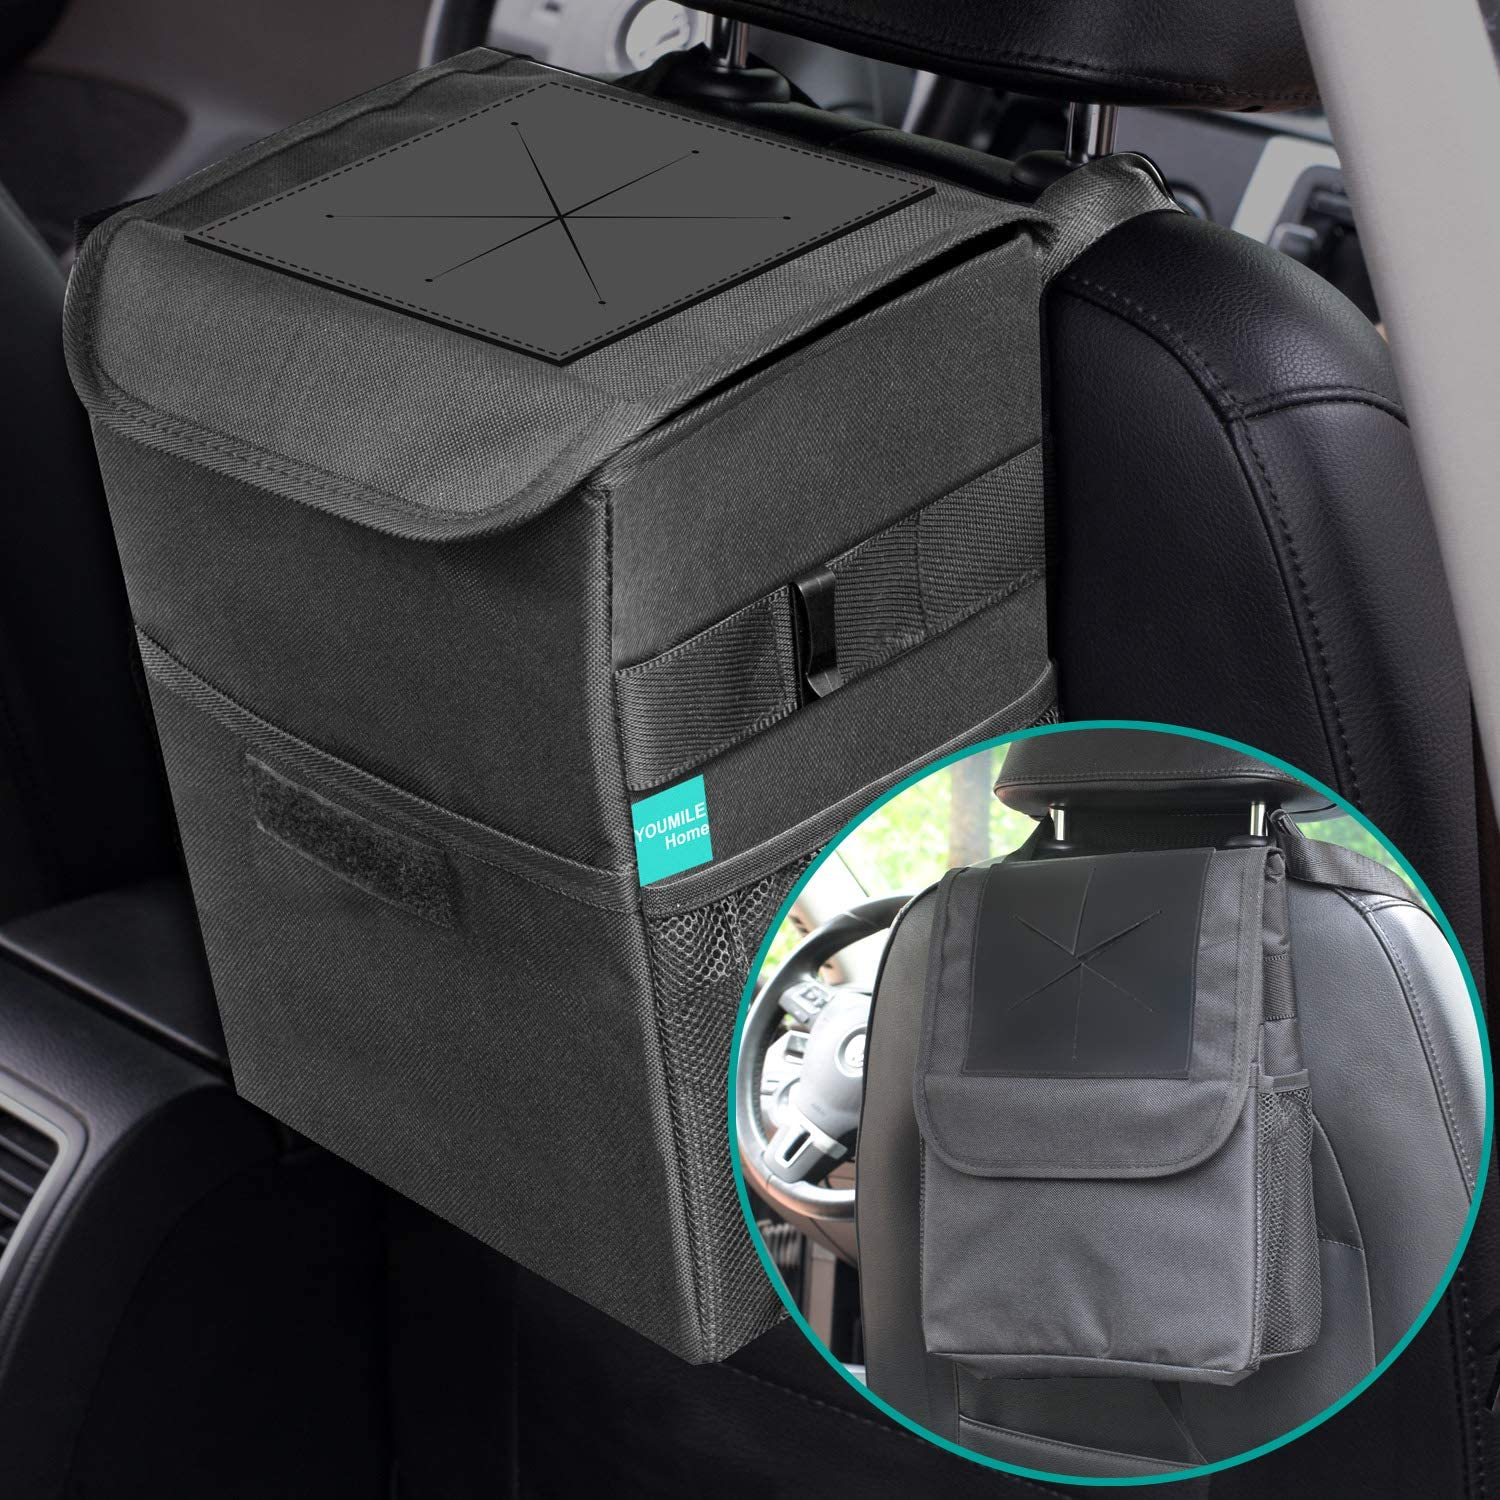 YOUMILE Car Trash Can with Lid 2.65 gal Trashcan Car Garbage Trash Bag Hanging with Storage Pockets Collapsible Portable Leakproof Waterproof Vinyl Inside Lining